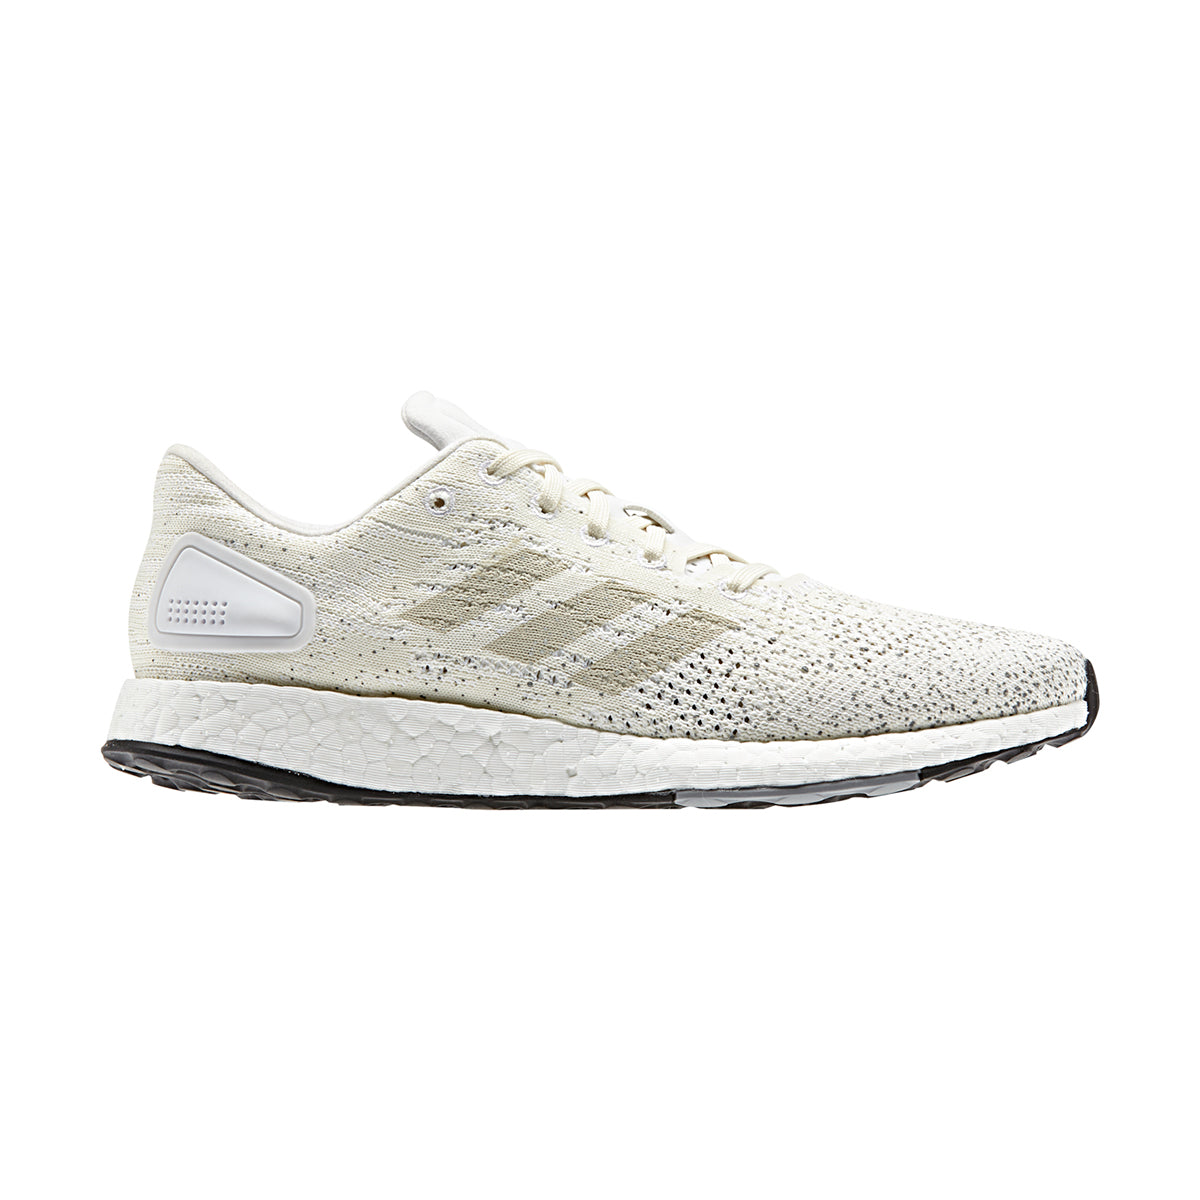 Adidas Pureboost Dpr Grey Cloud White